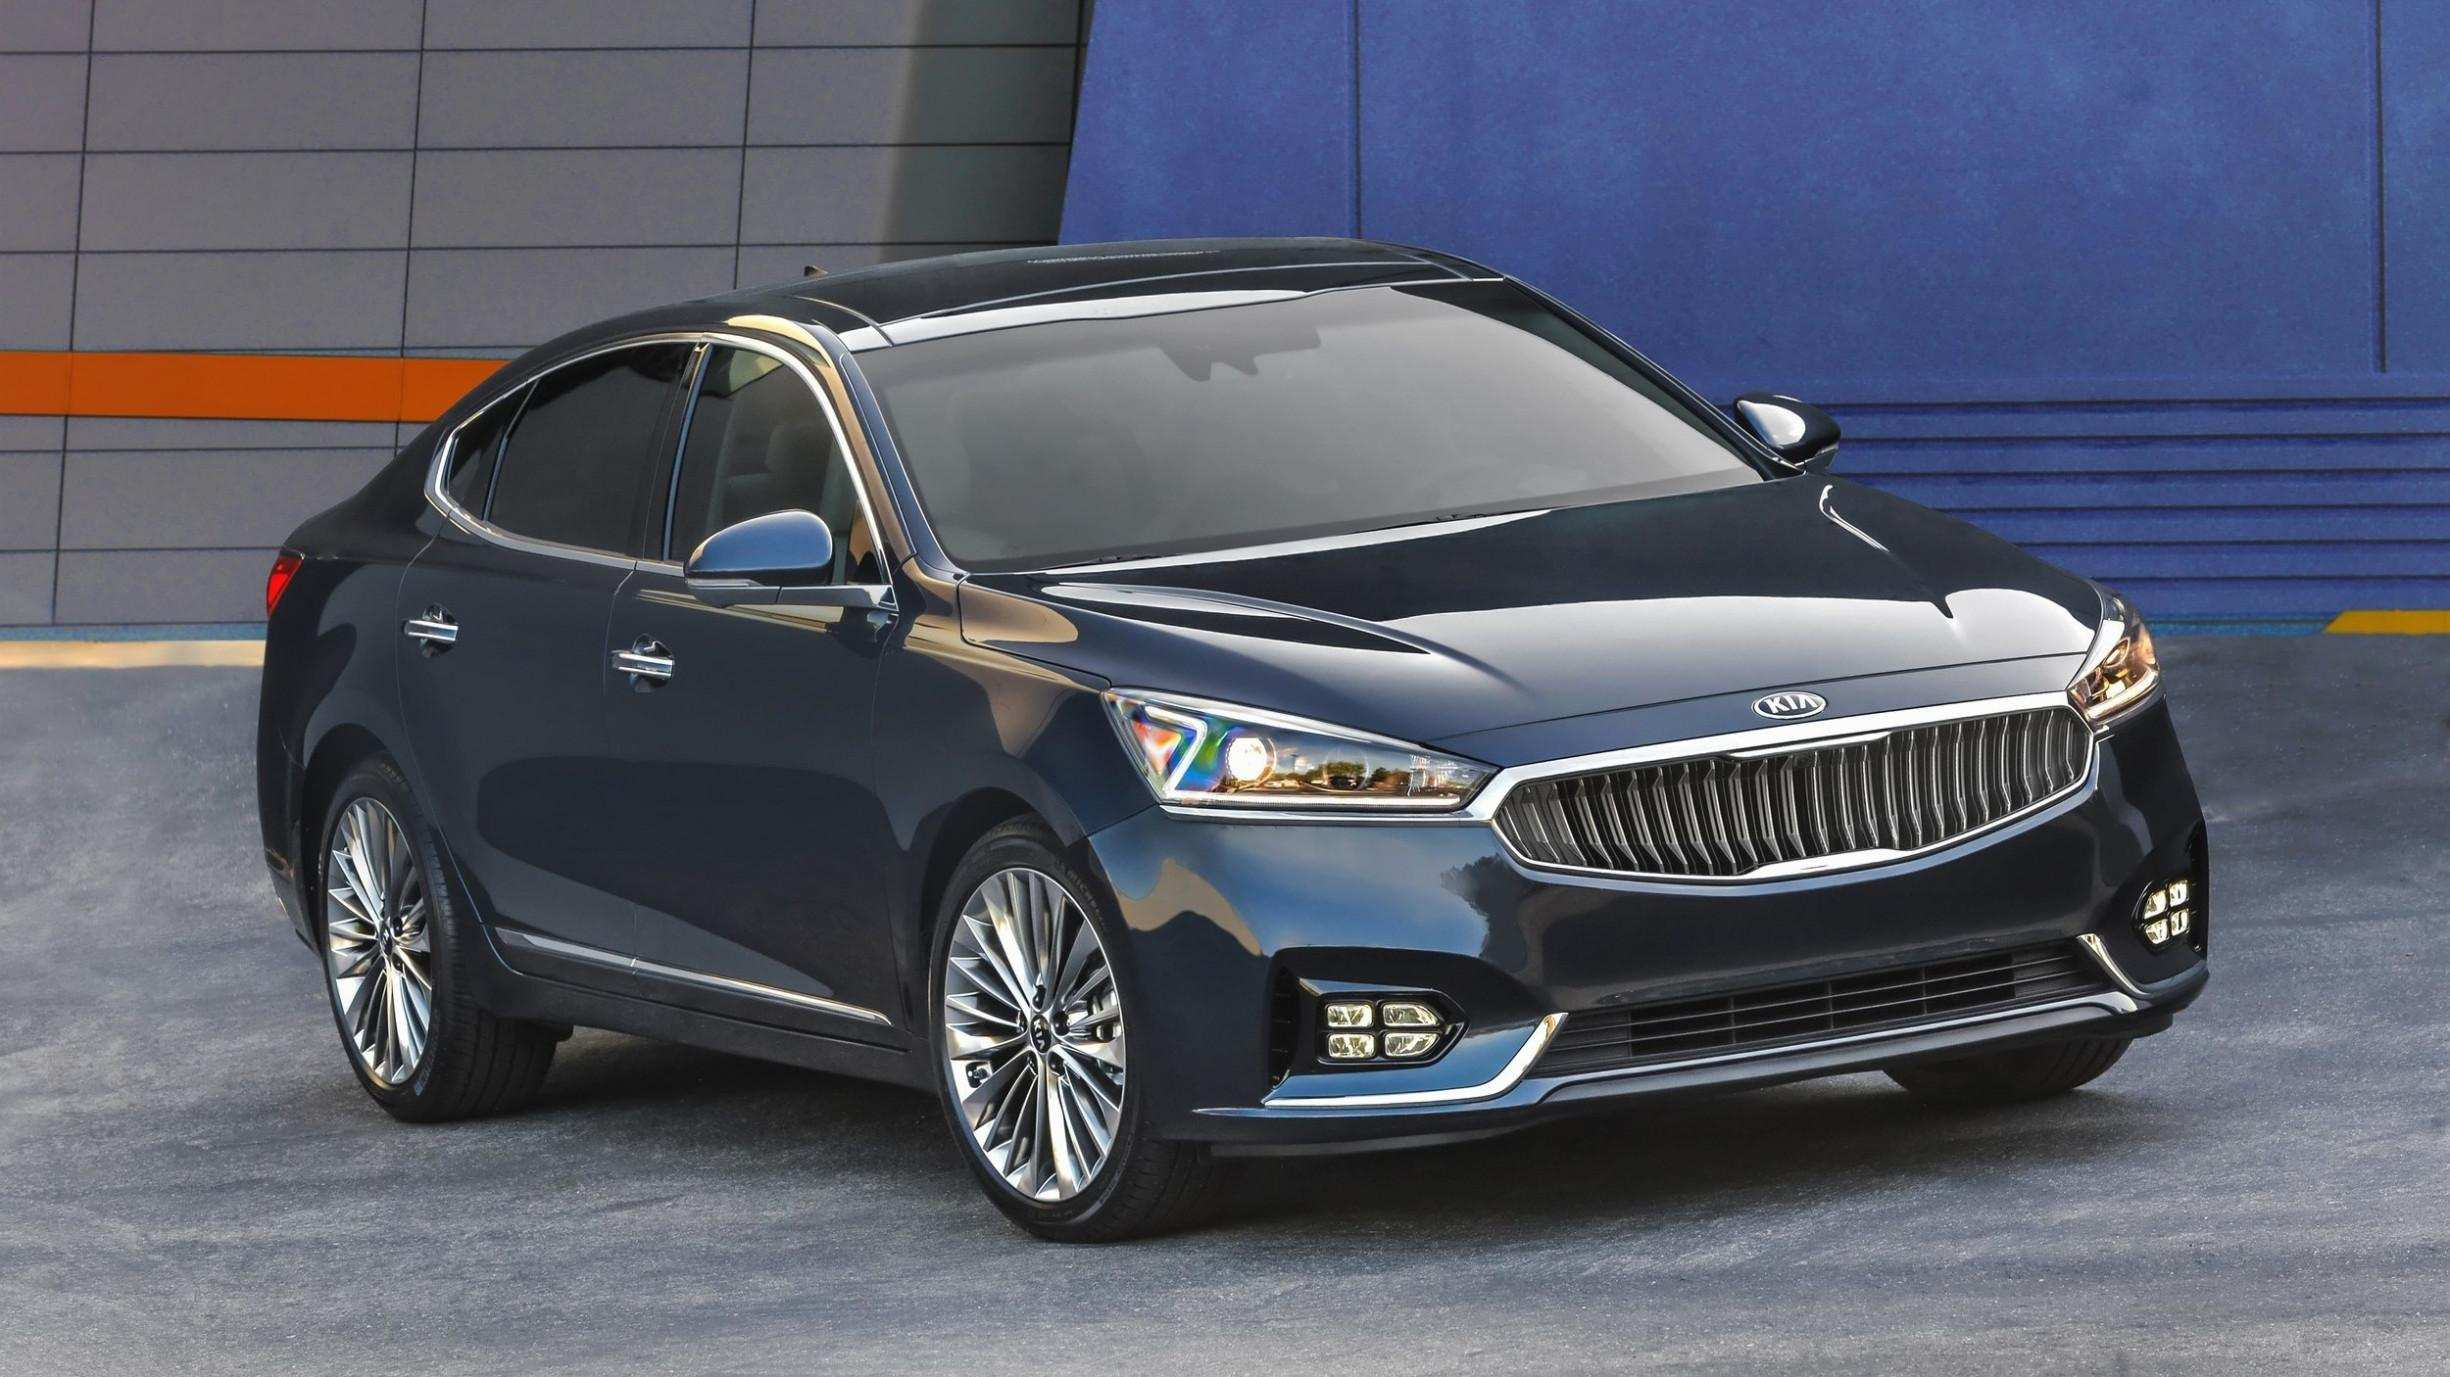 46 New 2019 Kia Usa Price Design And Review